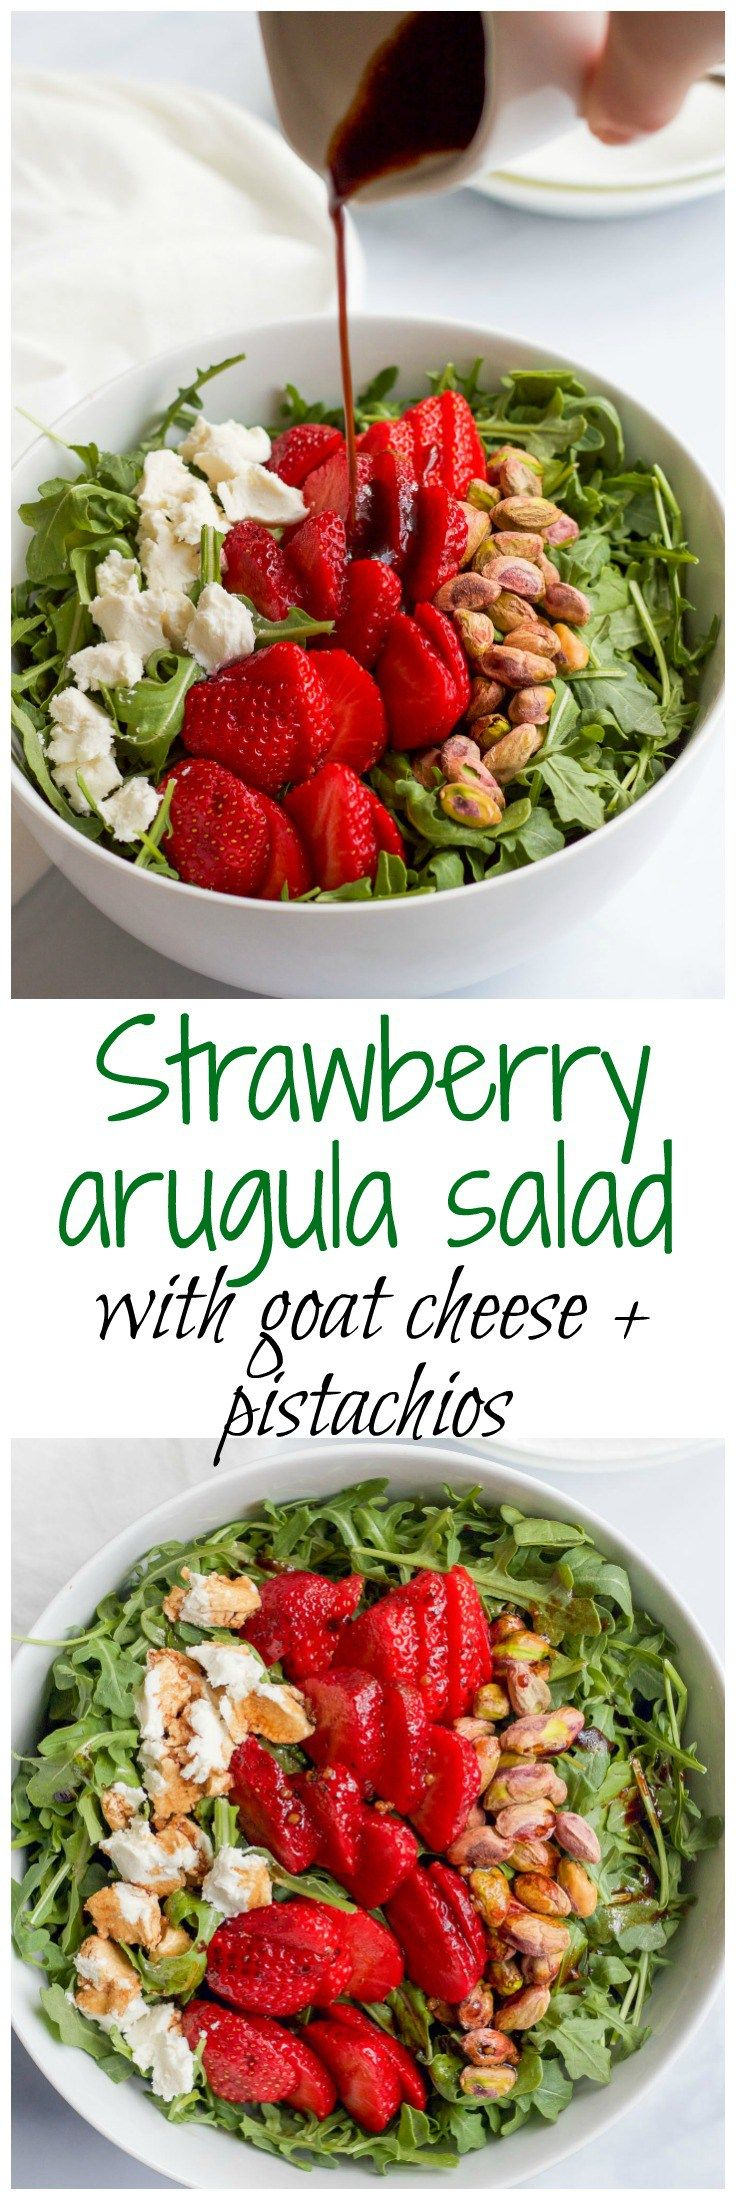 Baby arugula, strawberries, pistachios and goat cheese, with an easy homemade balsamic vinaigrette - great spring salad!   FamilyFoodontheTable.com